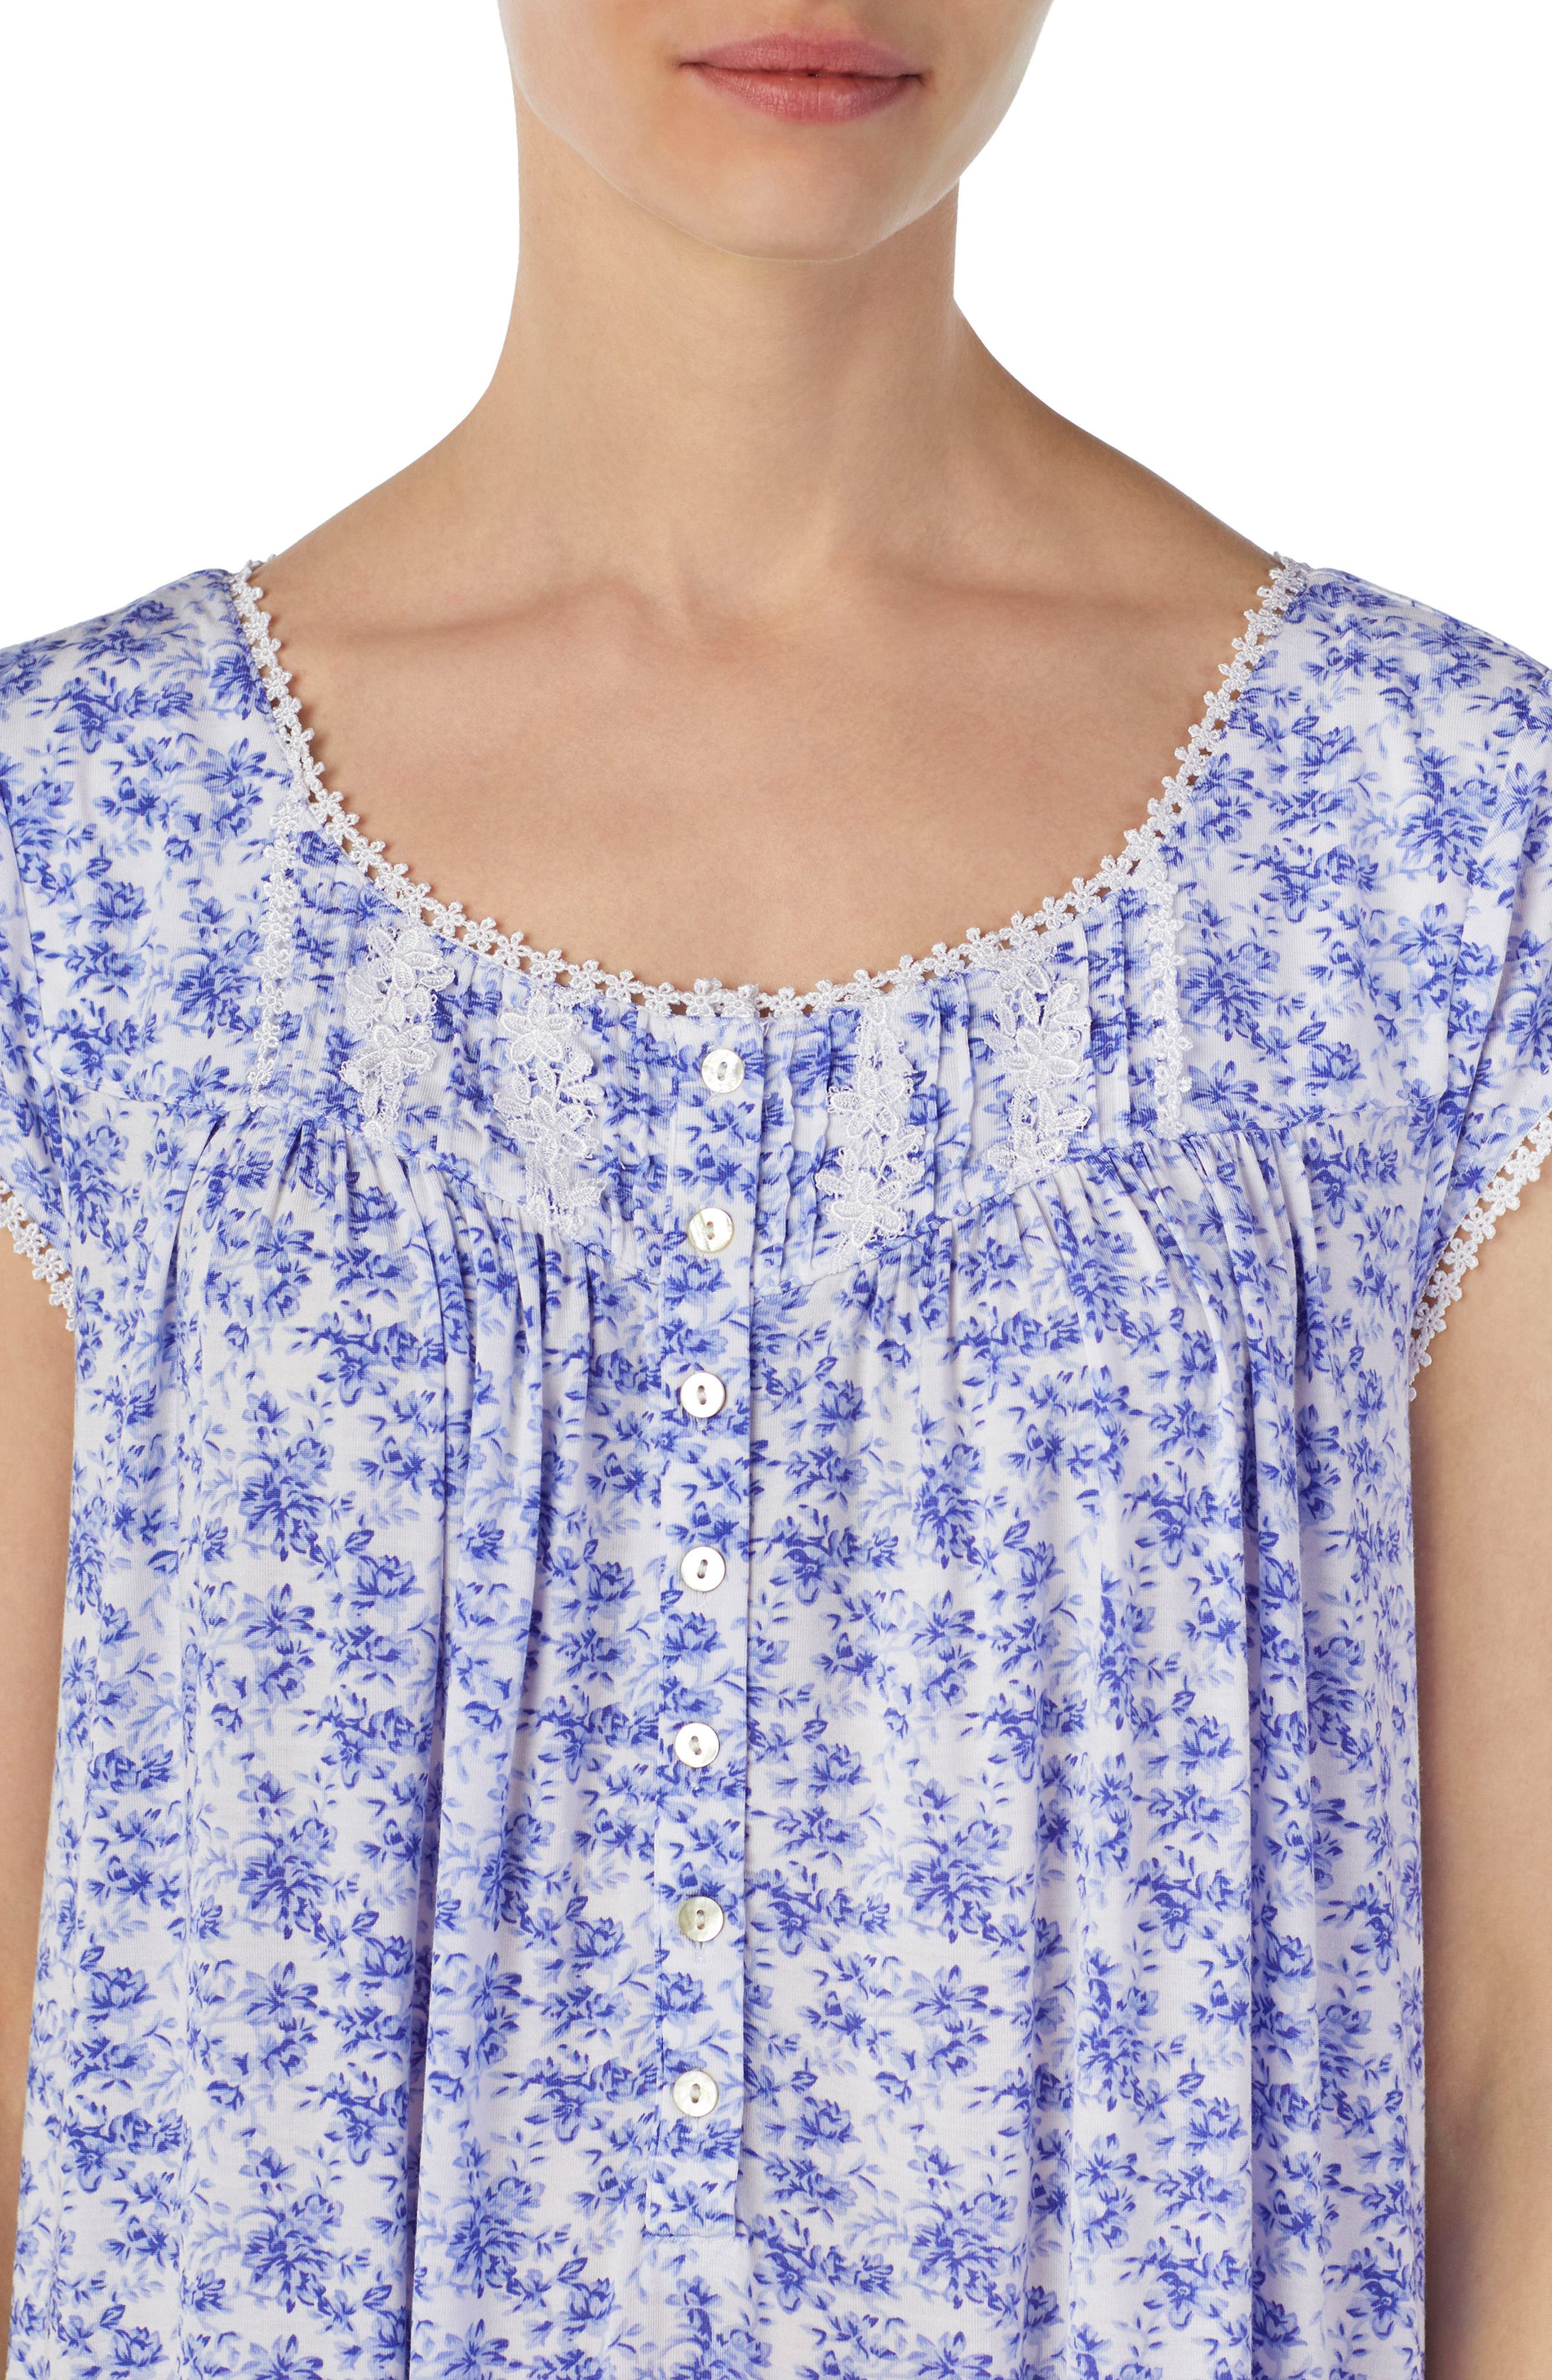 Floral Print Nightgown,                             Alternate thumbnail 3, color,                             570